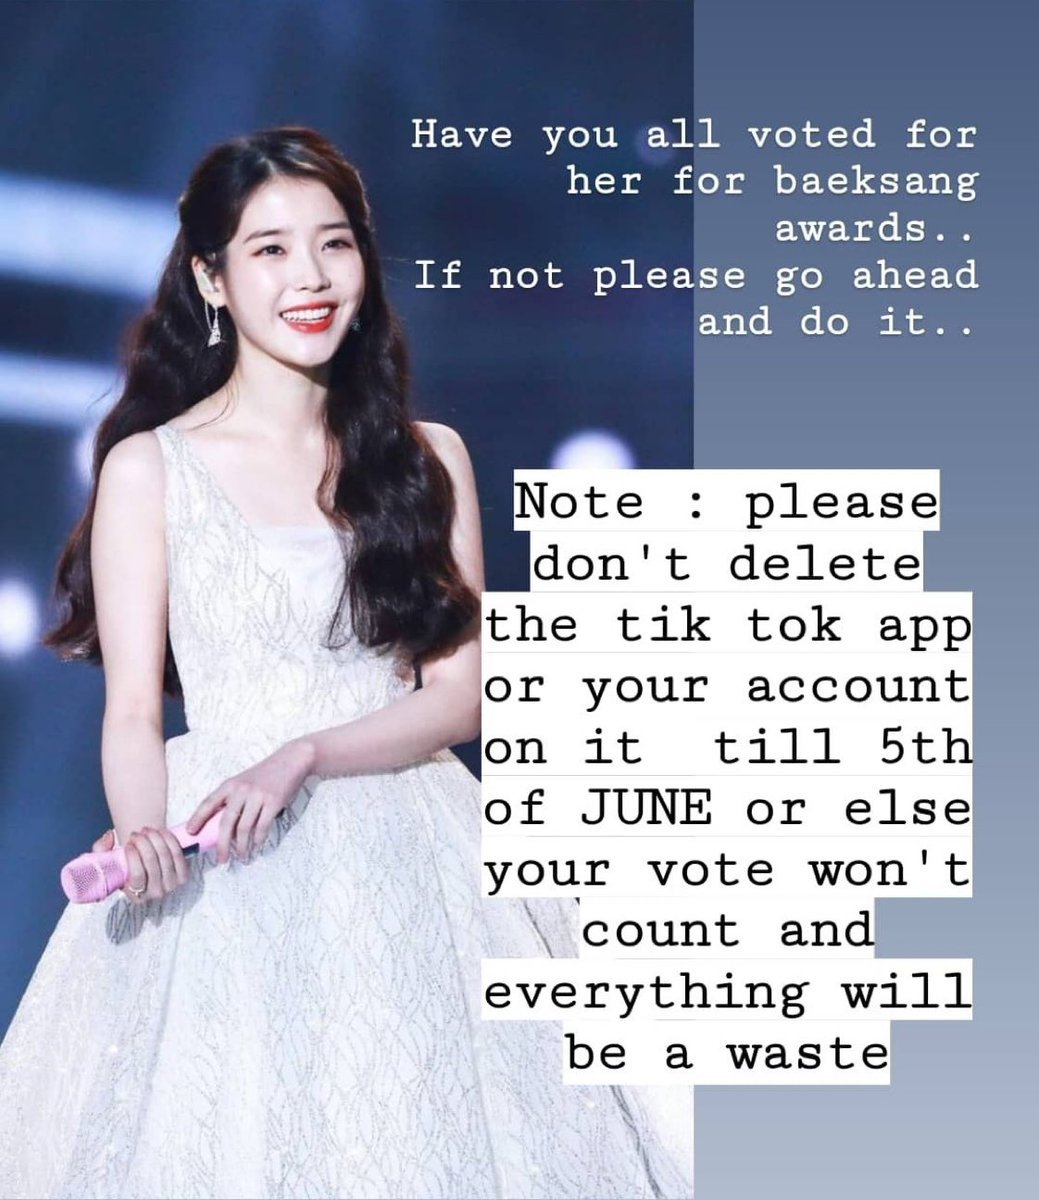 don't delete the tiktok app until 5th june it not the votes WILL NOT count!!!!